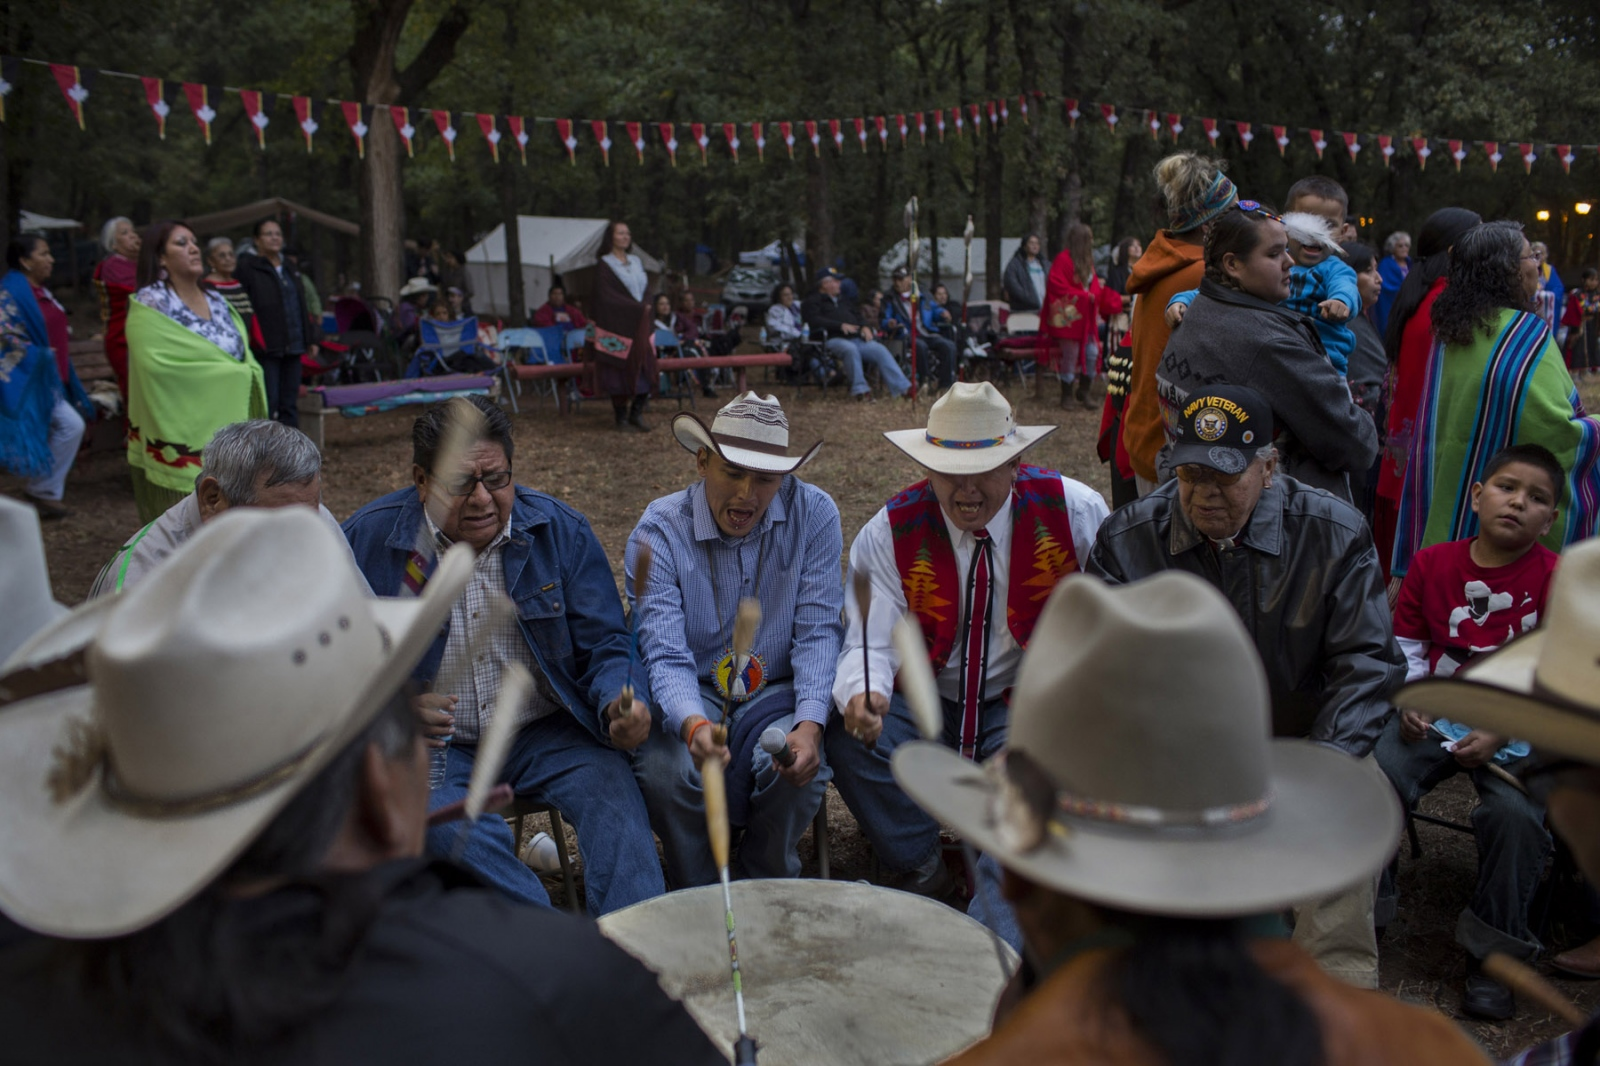 Singers drum to the beat of a tribal song during the ceremony remembering the veterans of the Kiowa tribe during their annual Black Leggings Society gathering near Anadarko, OK.